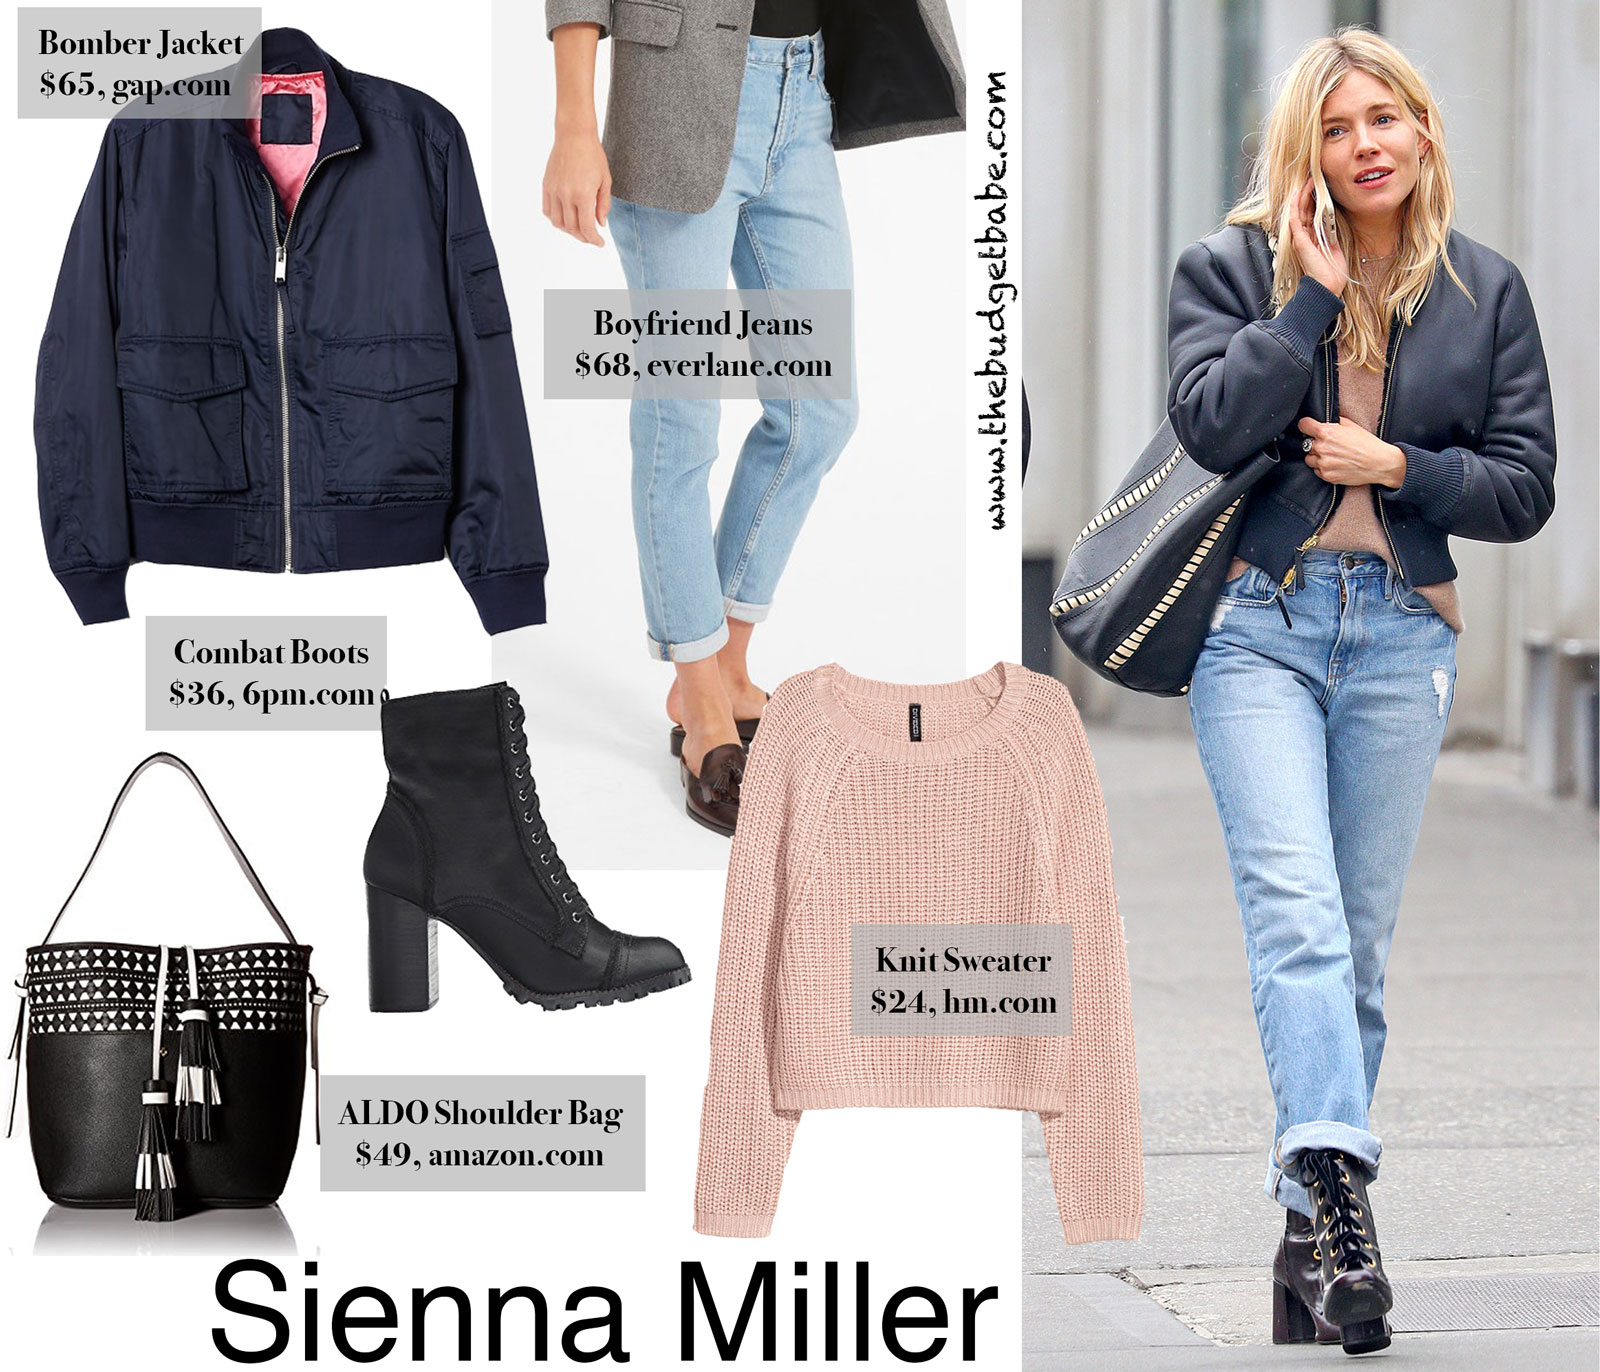 Sienna Miller's Bomber Jacket and Boyfriend Jeans Look for Less